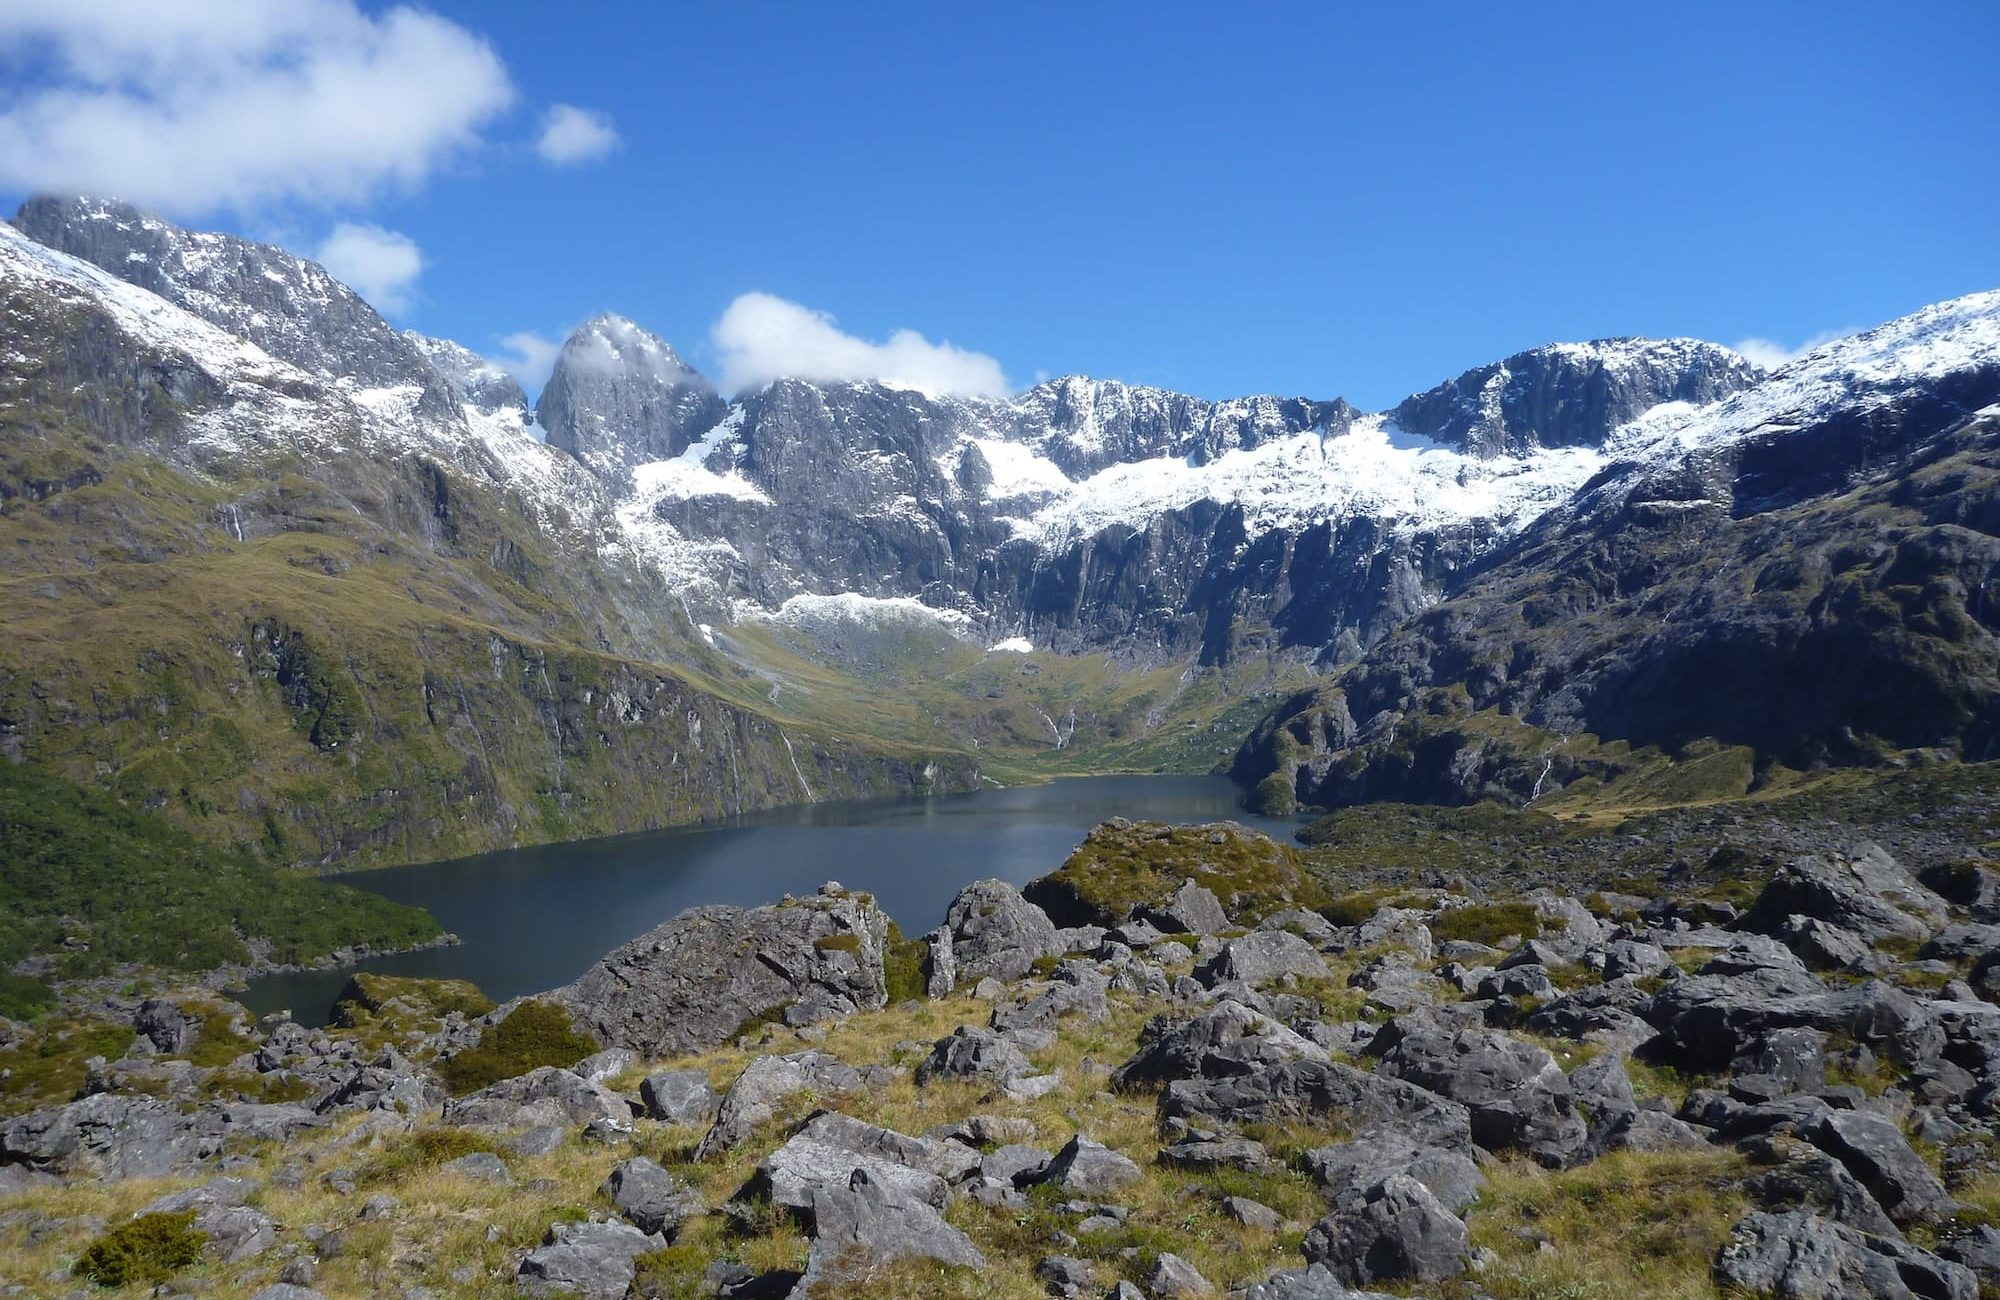 Lake Adelaide and the cirque headwall